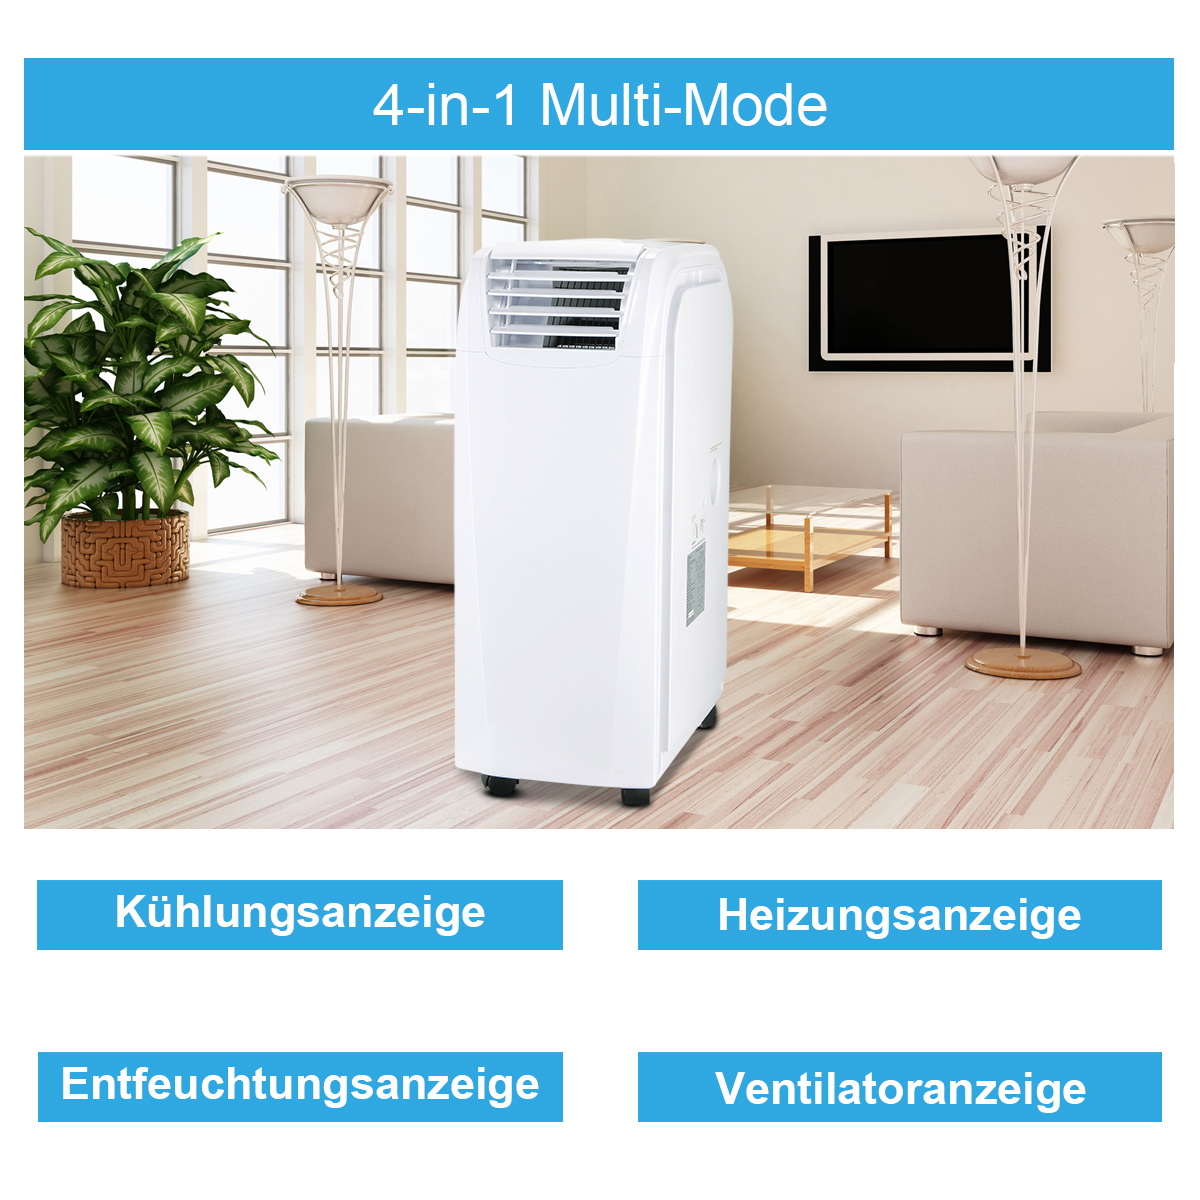 3 5 kw btu mobile klimaanlage 4 in 1 klimager t heizger te ventilator ebay. Black Bedroom Furniture Sets. Home Design Ideas